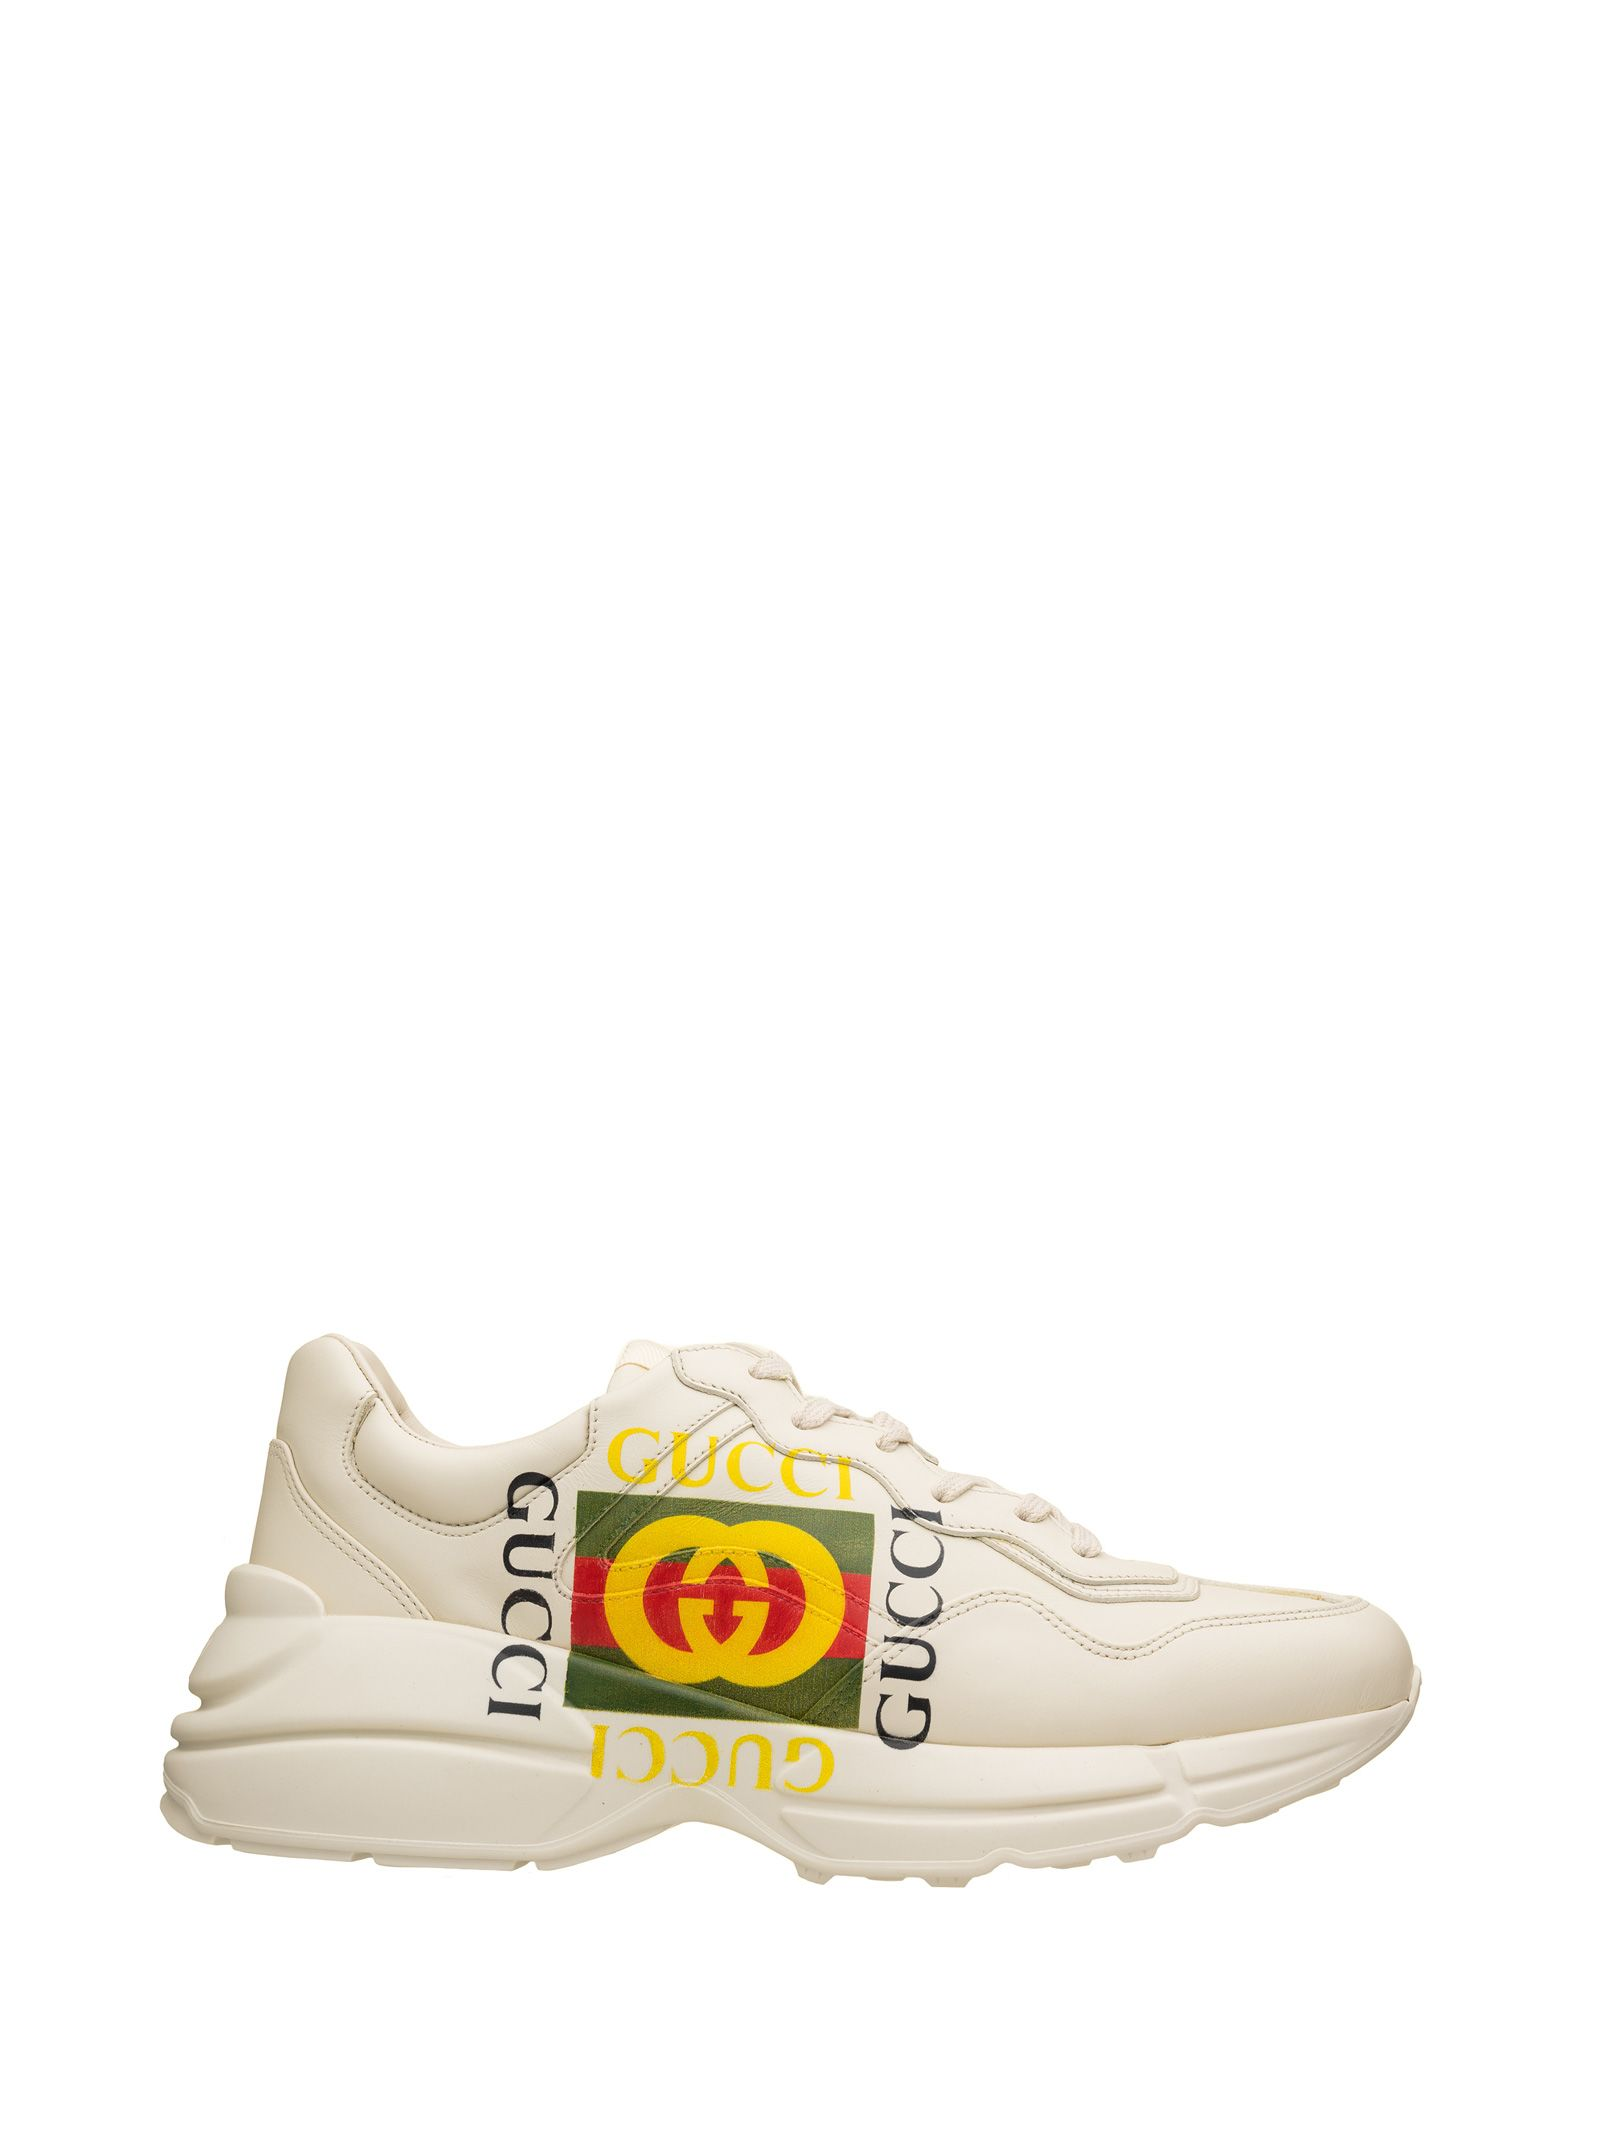 Gucci Sneakers   italist, ALWAYS LIKE A